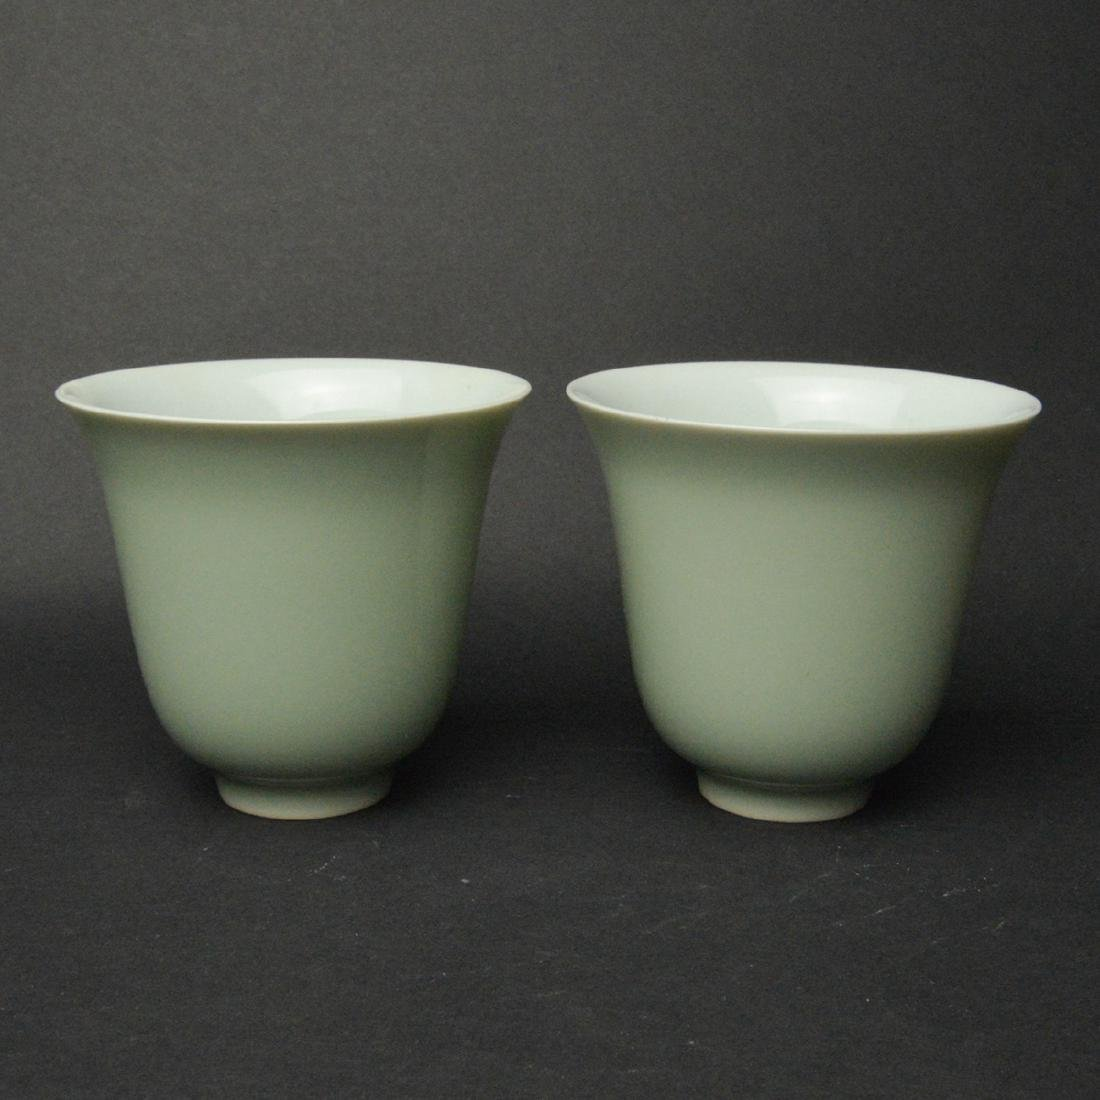 CHINESE PORCELAIN CUPS, PAIR